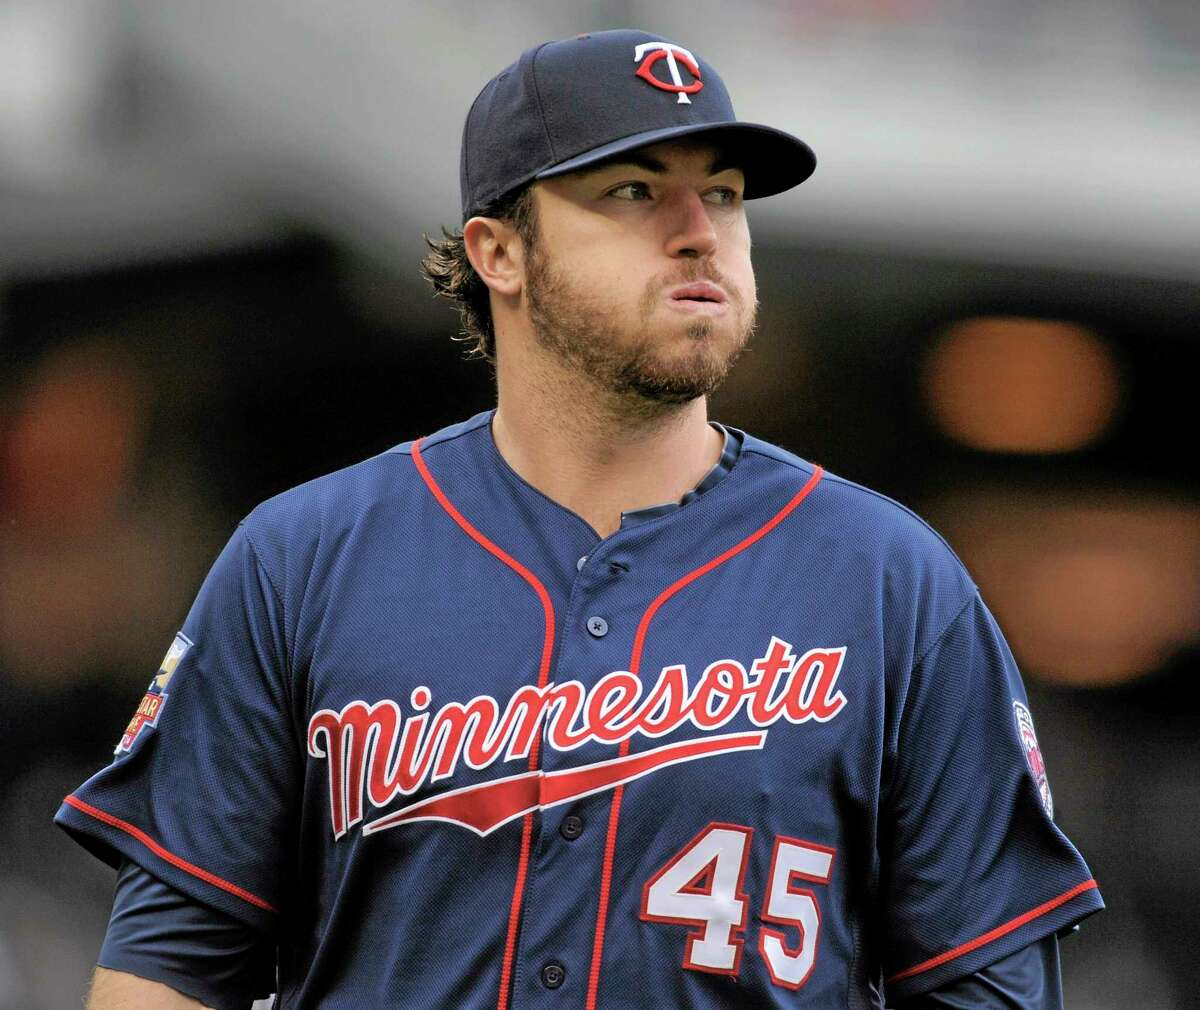 Twins starter Phil Hughes threw six innings of one-run ball and Minnesota beat the Boston Red Sox 4-3 in 10 innings on Thursday afternoon in Minneapolis.